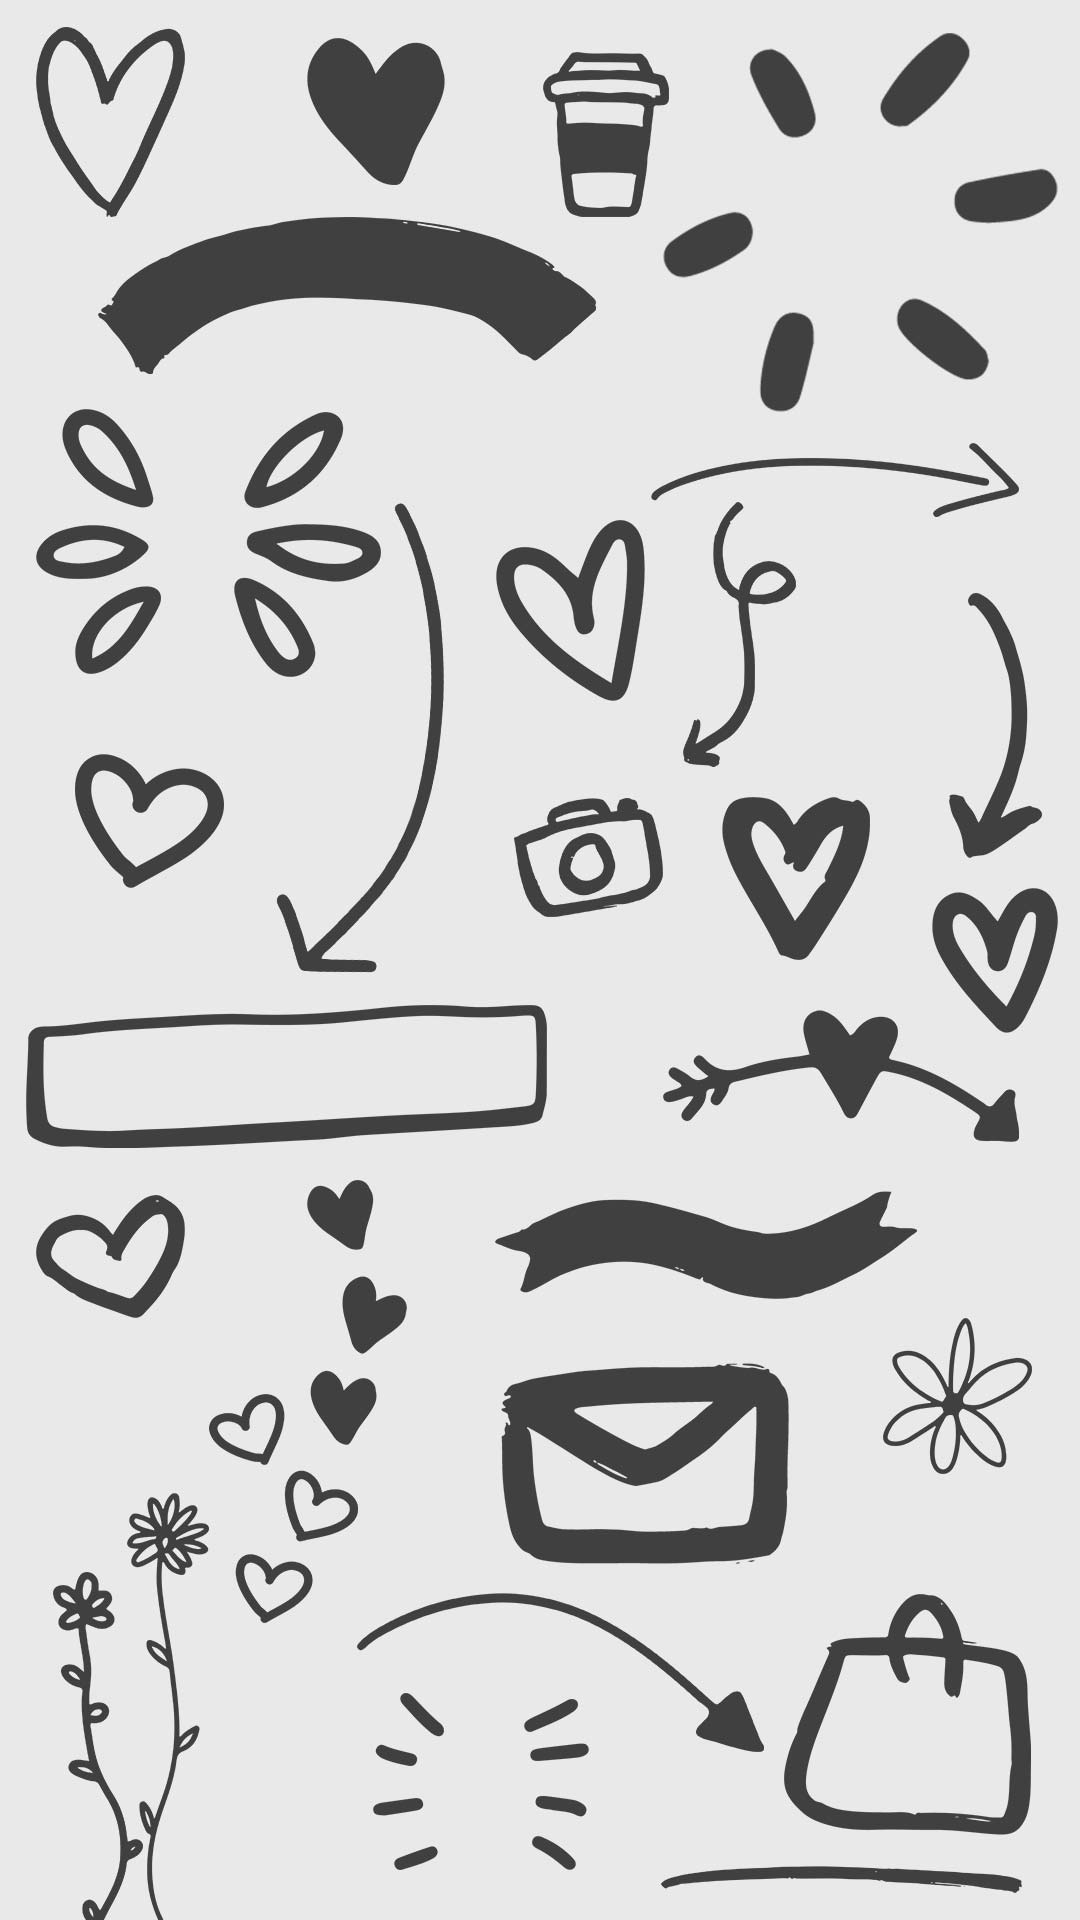 1632464452 249 Free wedding story stickers to download - Free wedding story stickers to download